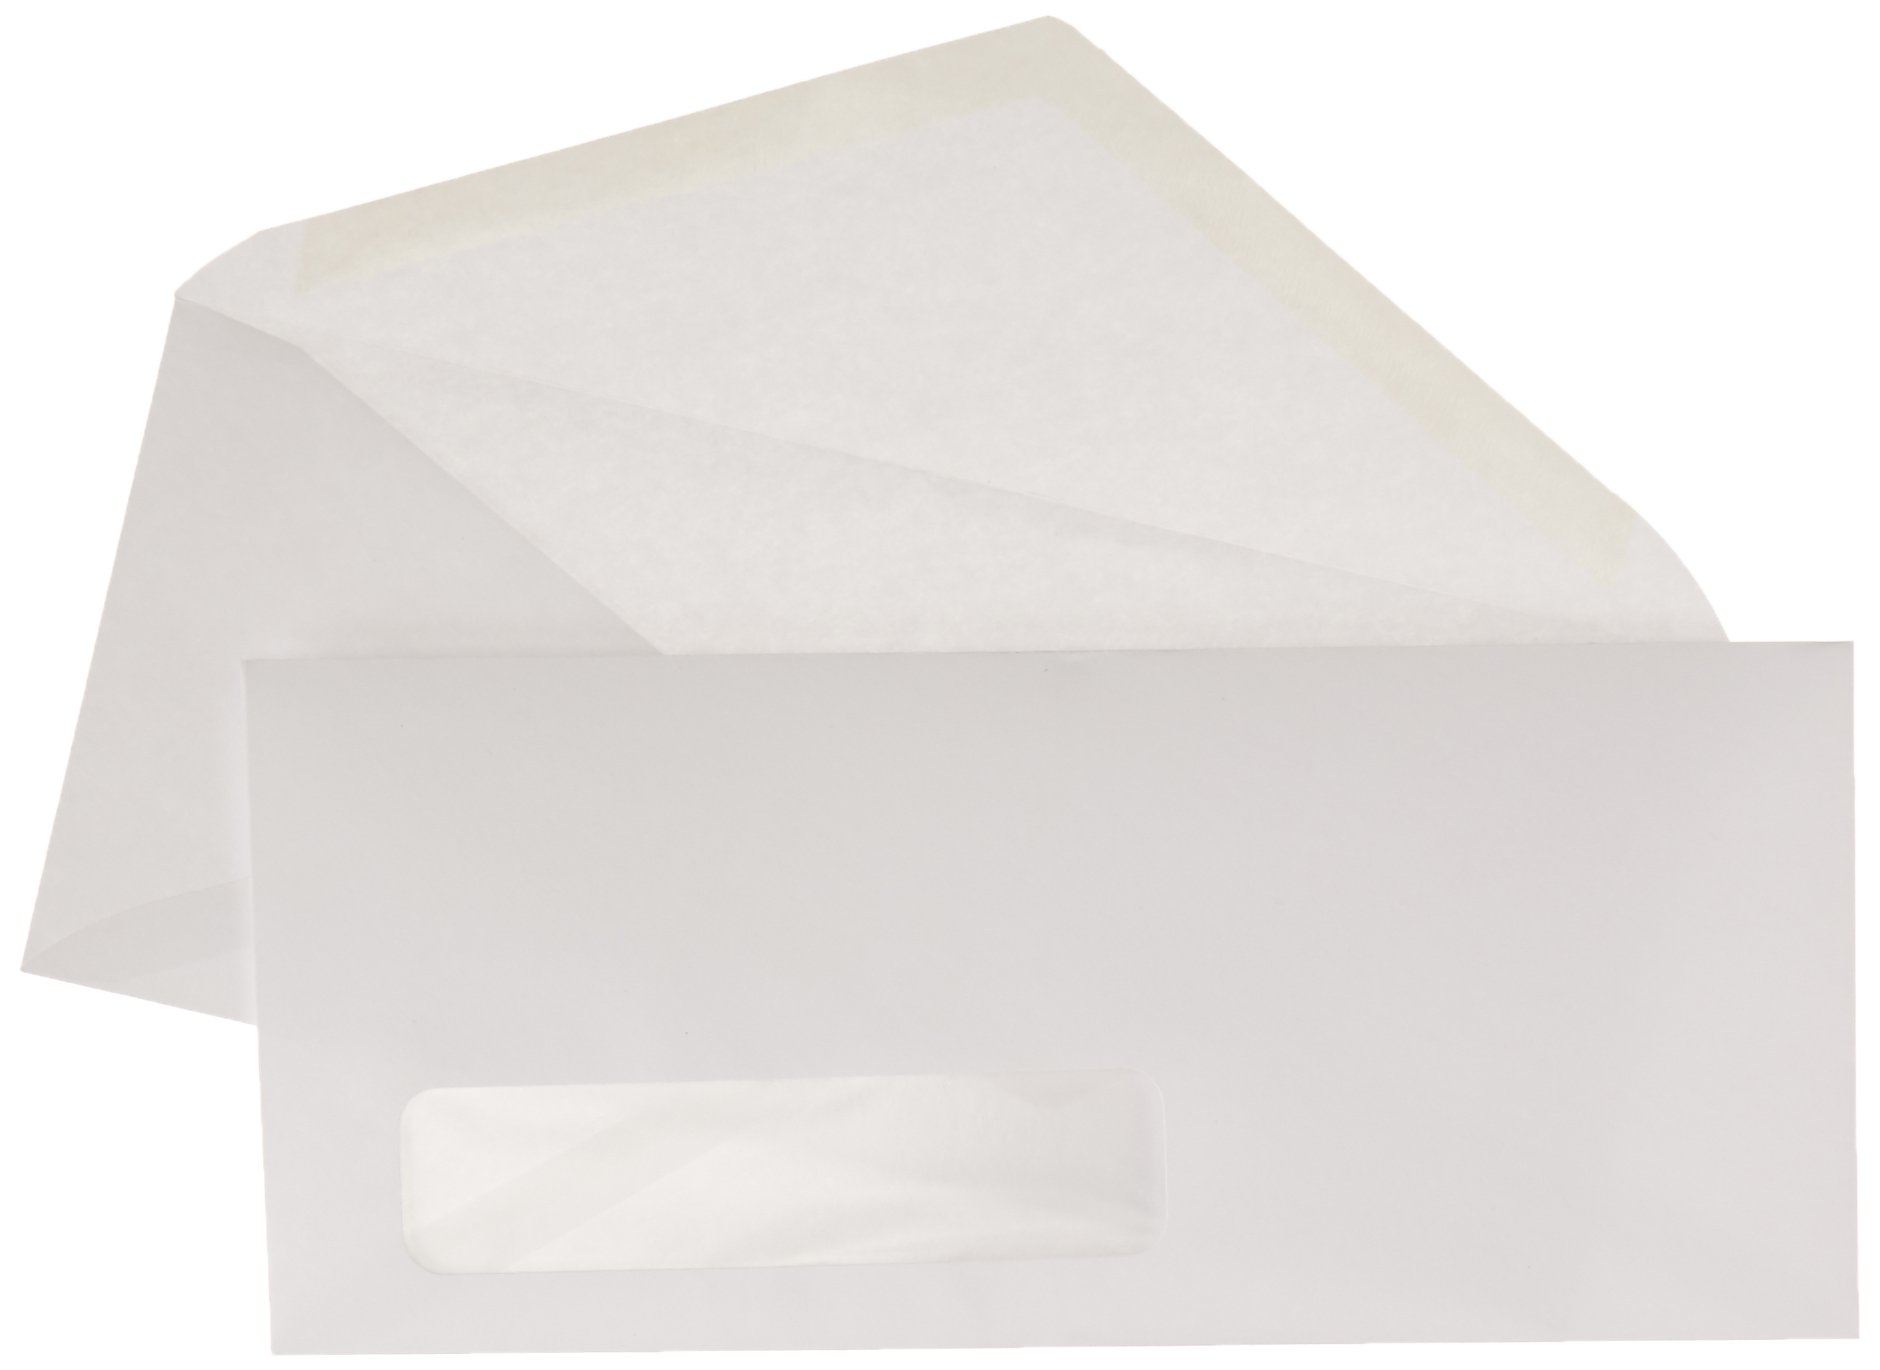 AmazonBasics #10 Envelope, Gummed Seal, Left Window, White, 500-Pack